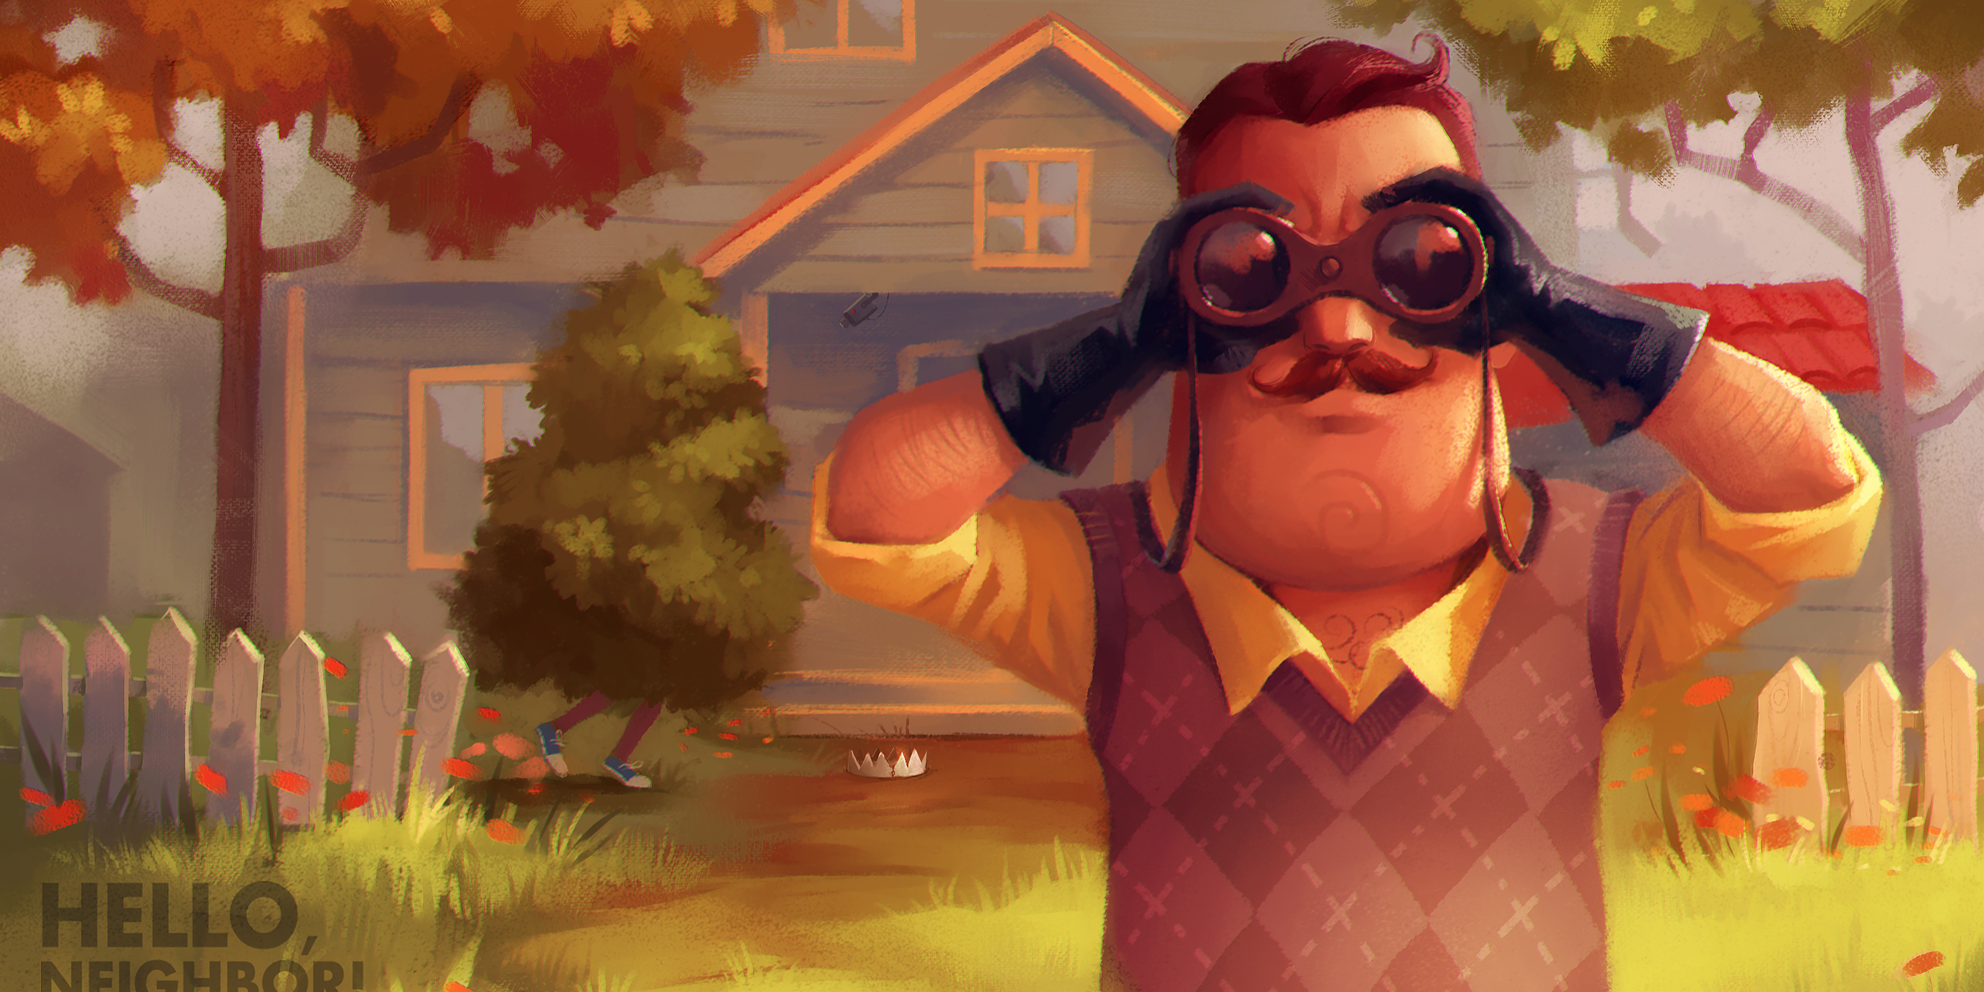 Hello Neighbor': 7 Things You Need to Know About This